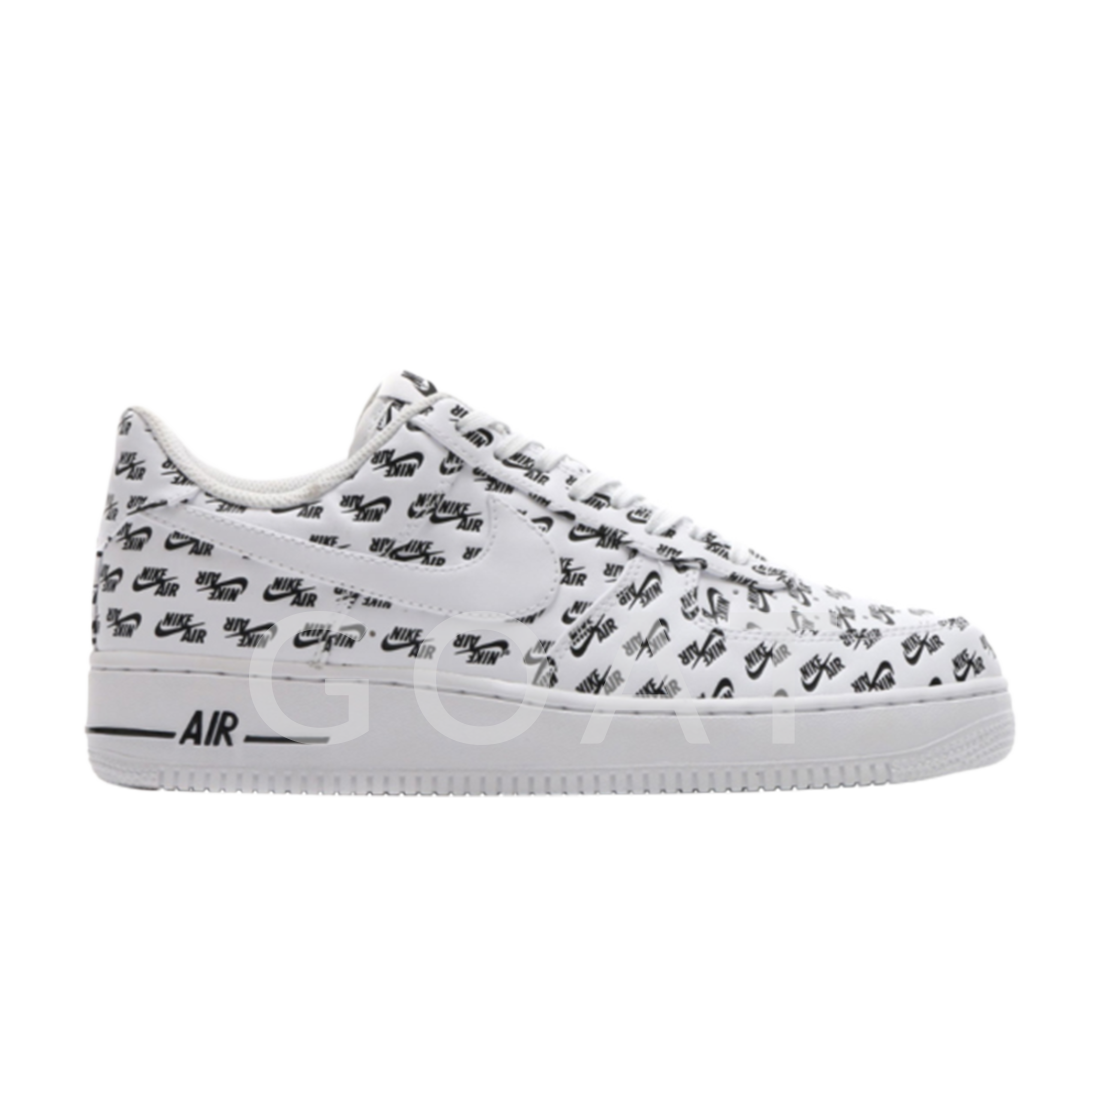 Air Force 1 Low 07 QS 'All Over Logo White' Nike air